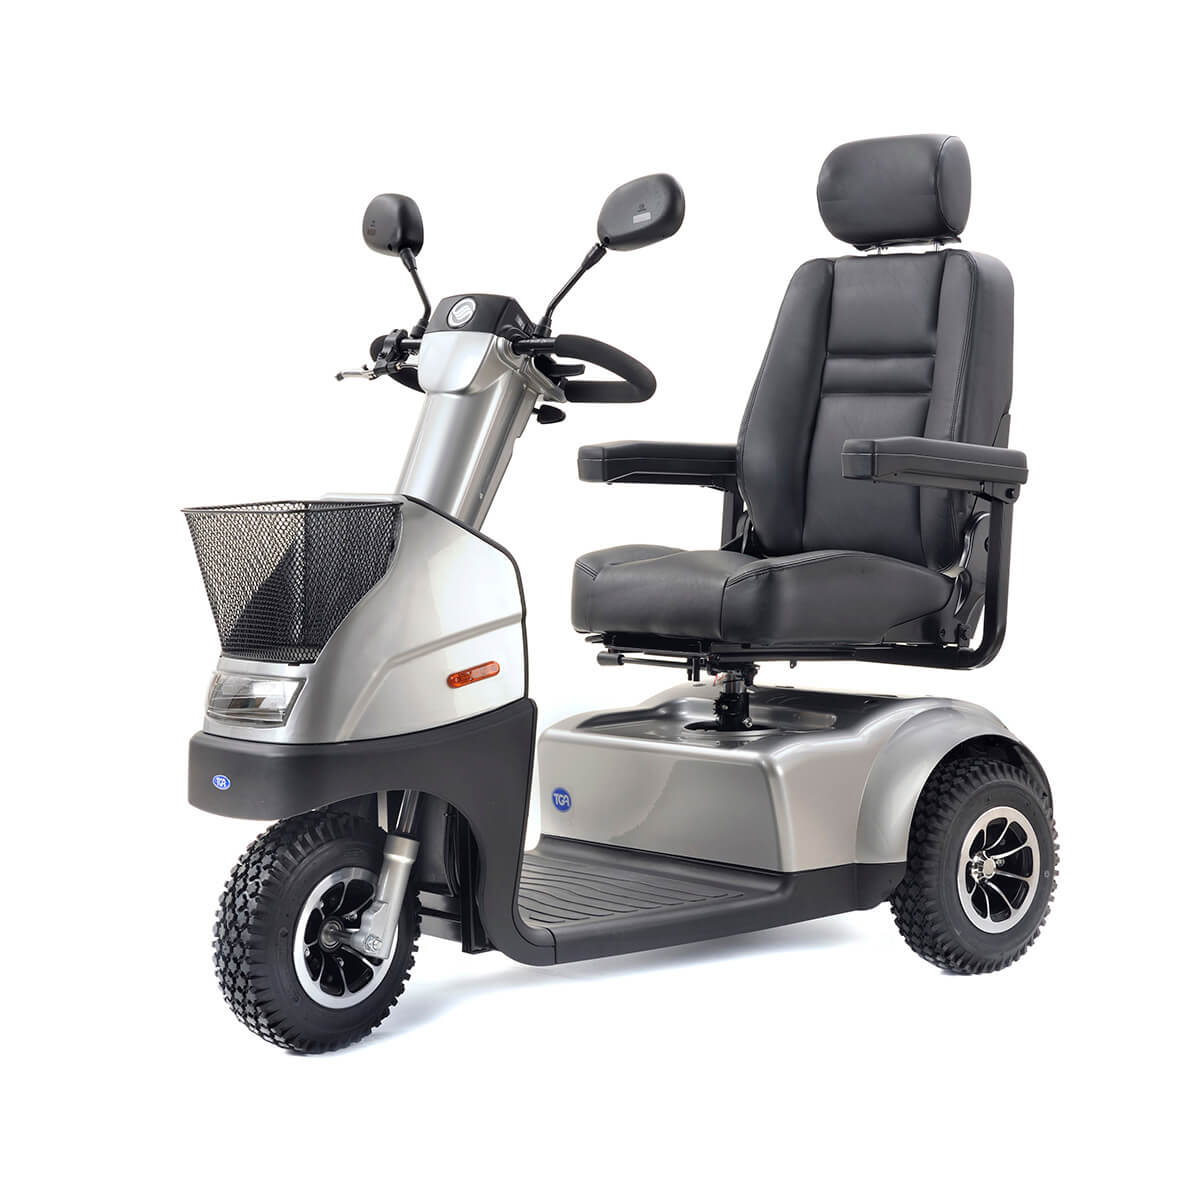 Breeze Midi 3 scooter